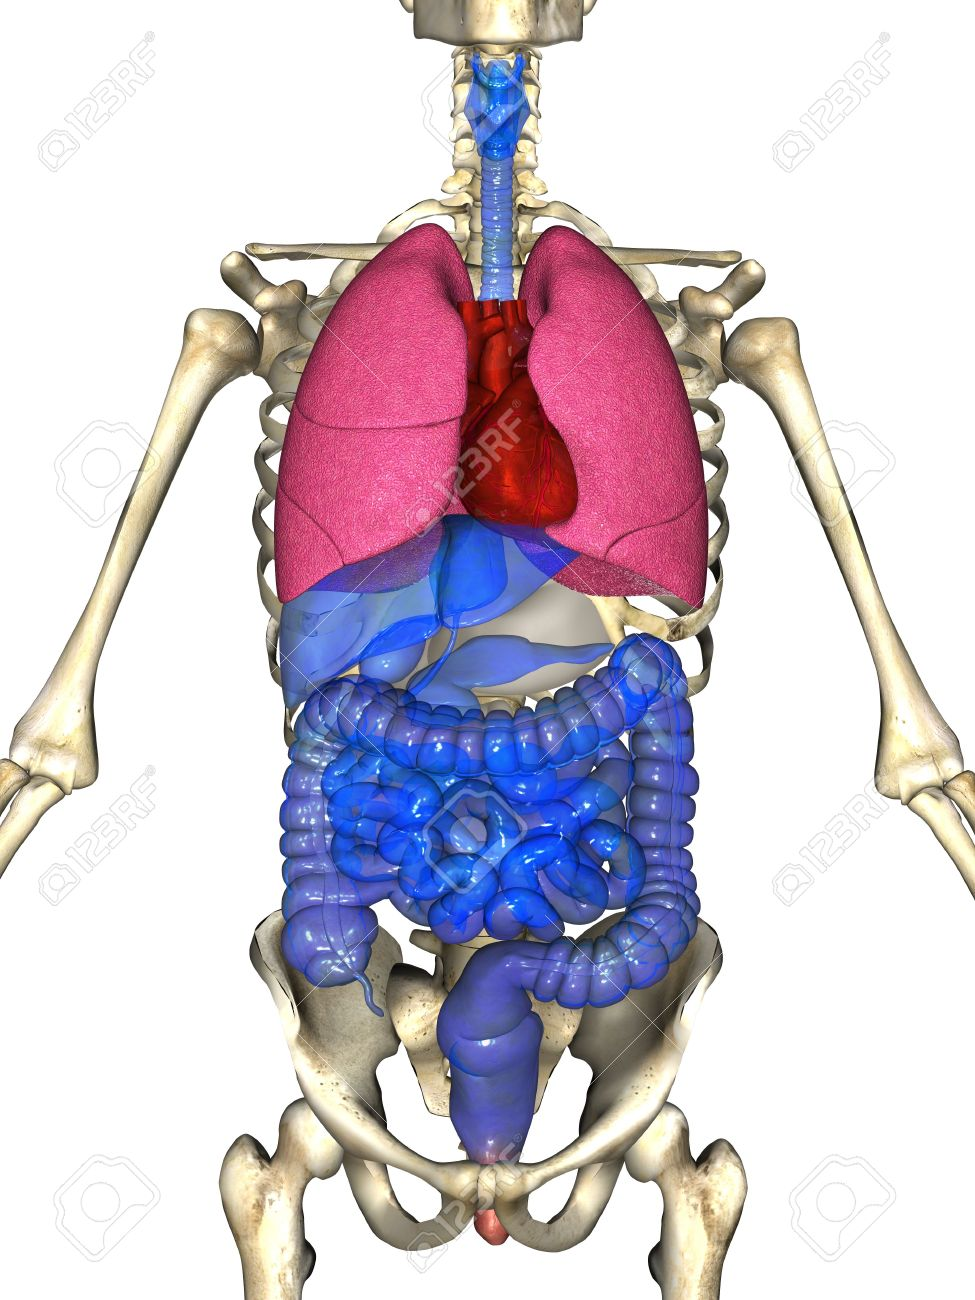 3D Rendering Of The Major Organ Systems Of The Human Body ...